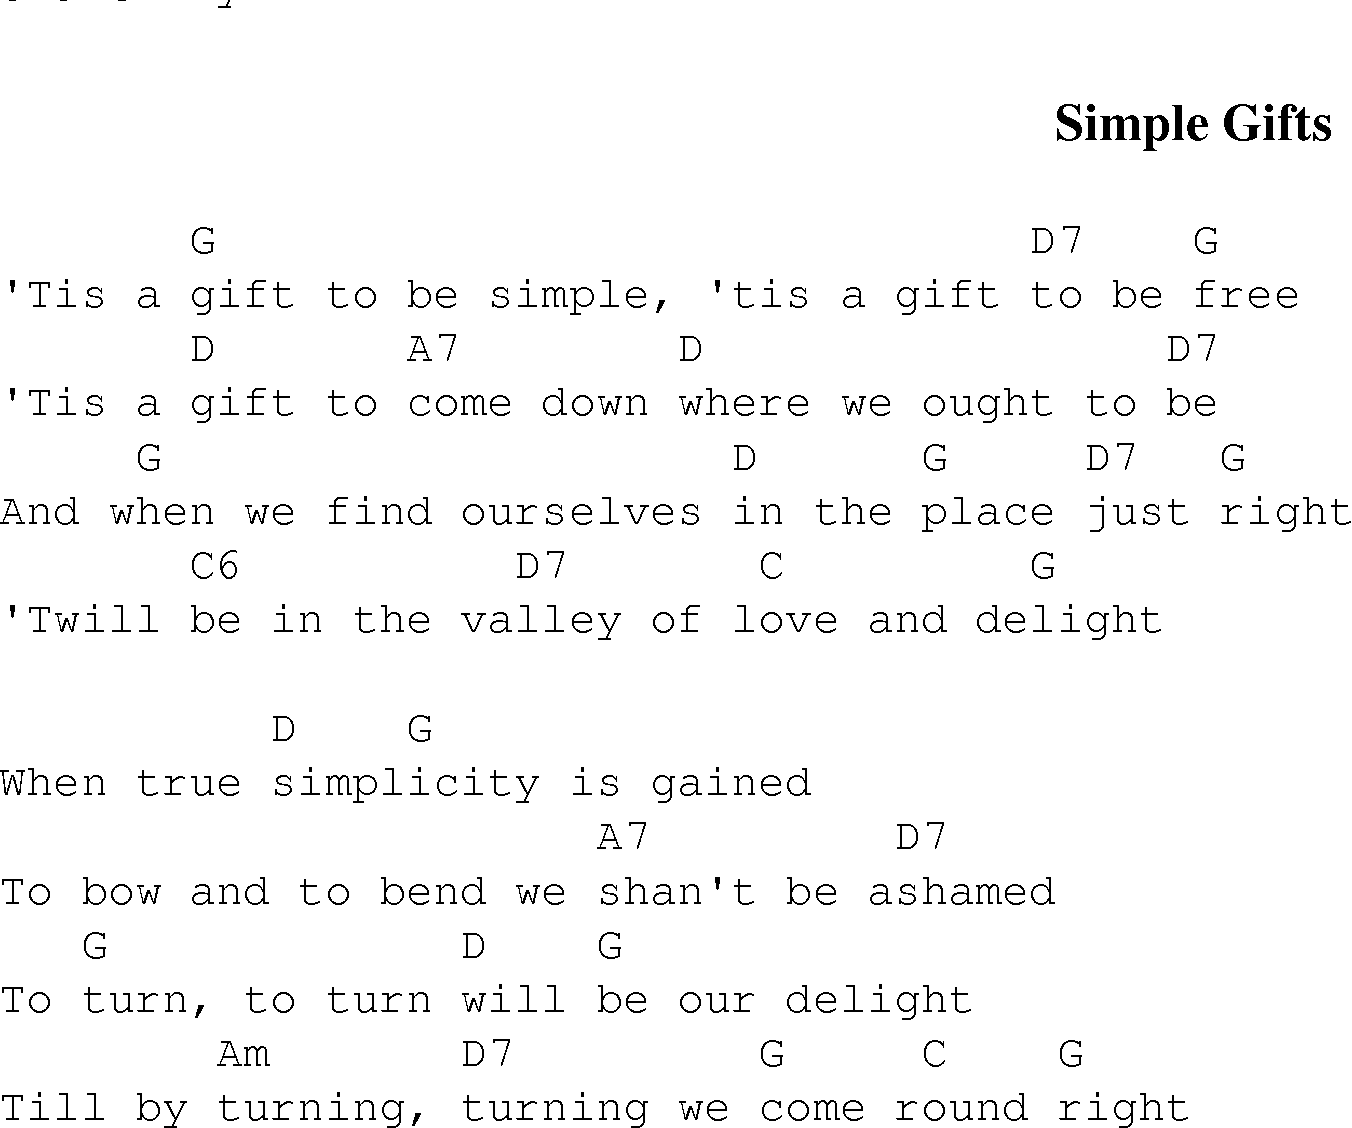 Simple gifts christian gospel song lyrics and chords gospel song simplegifts lyrics and chords hexwebz Images